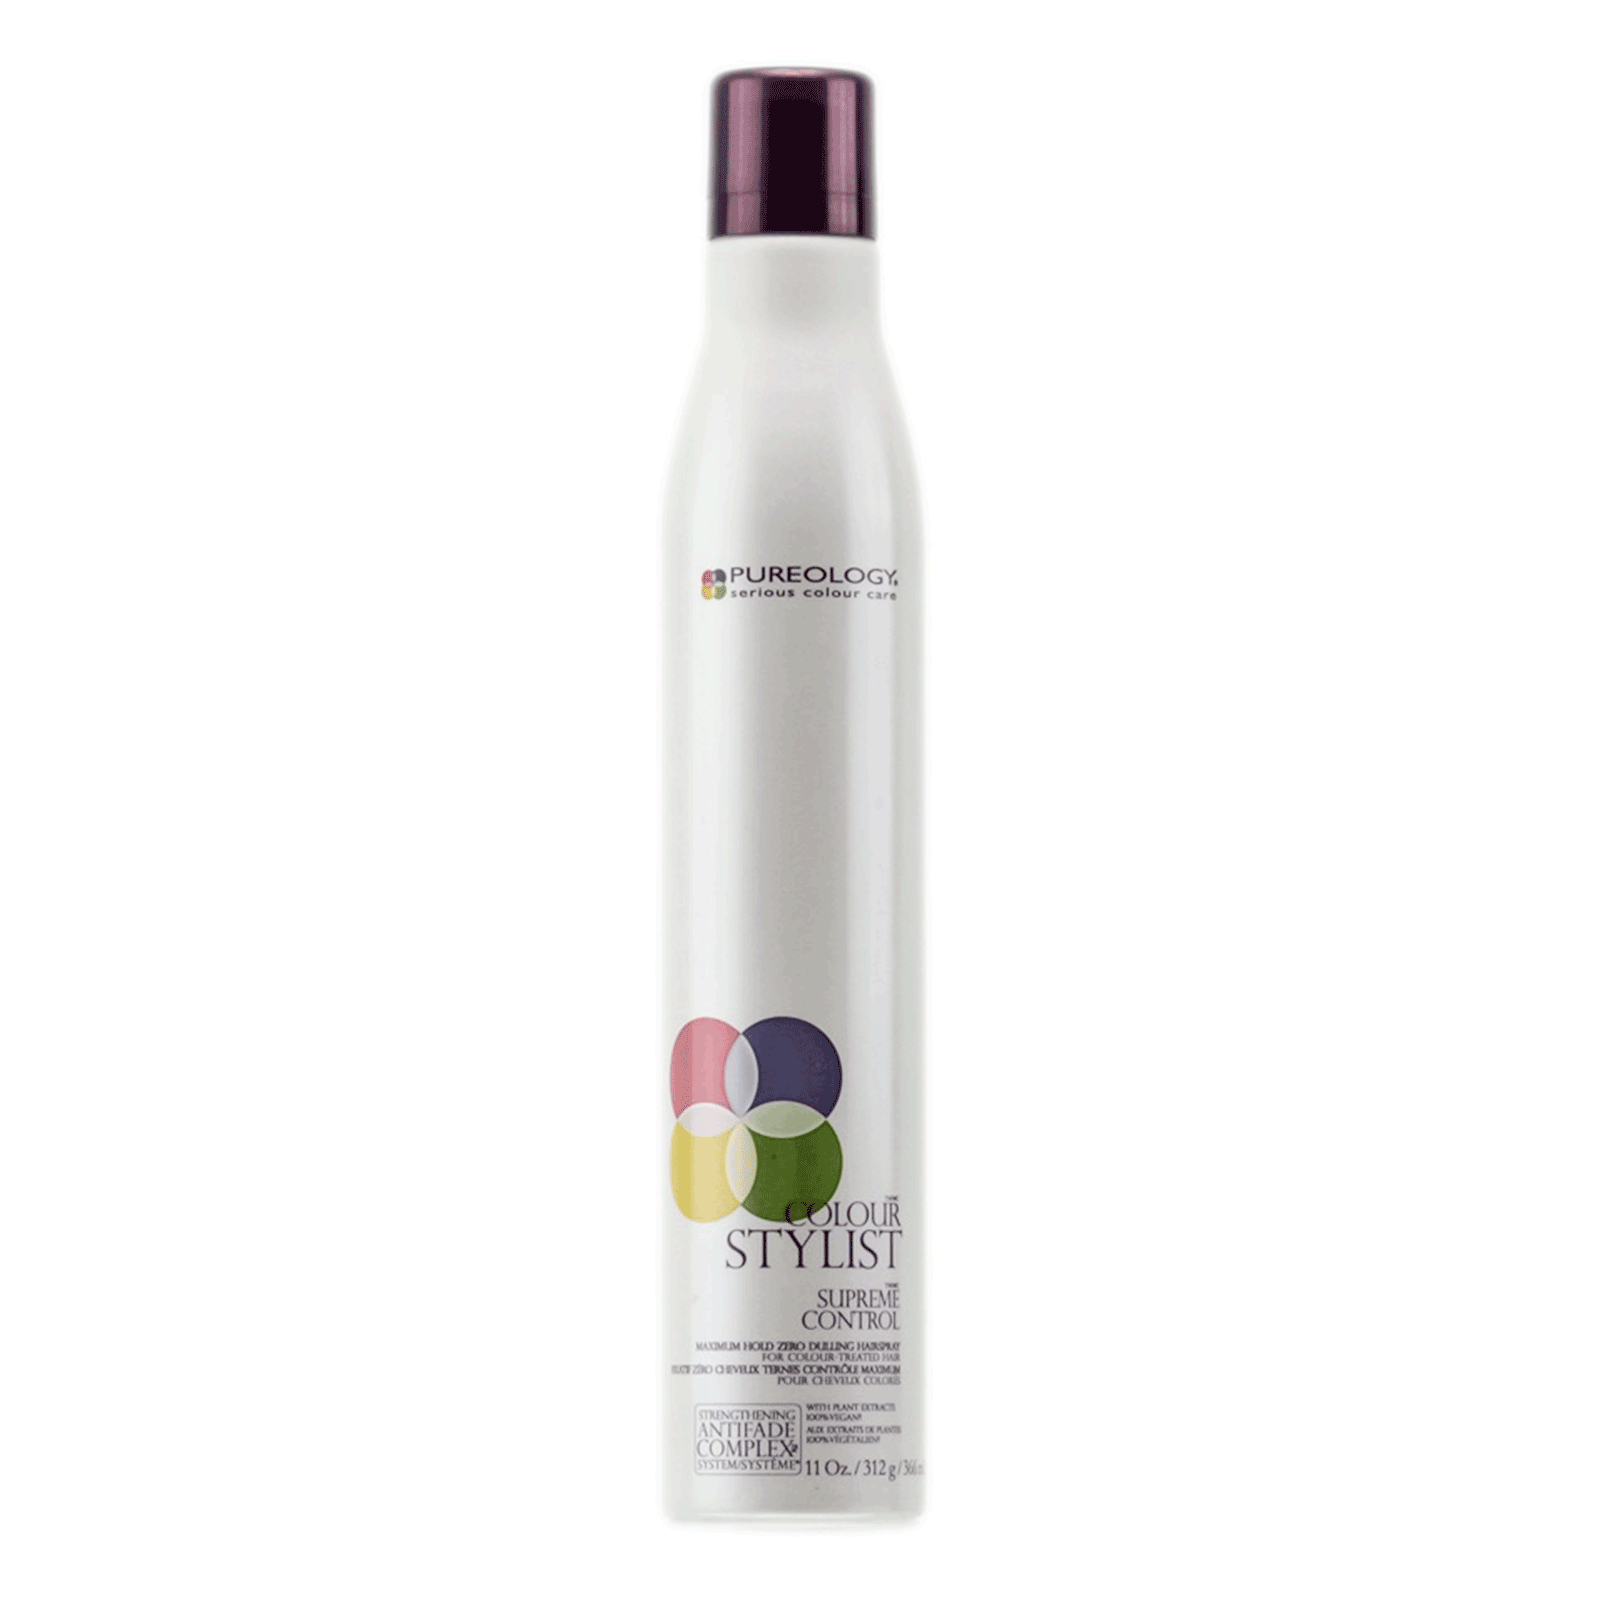 Color Stylist Supreme Control Hairspray